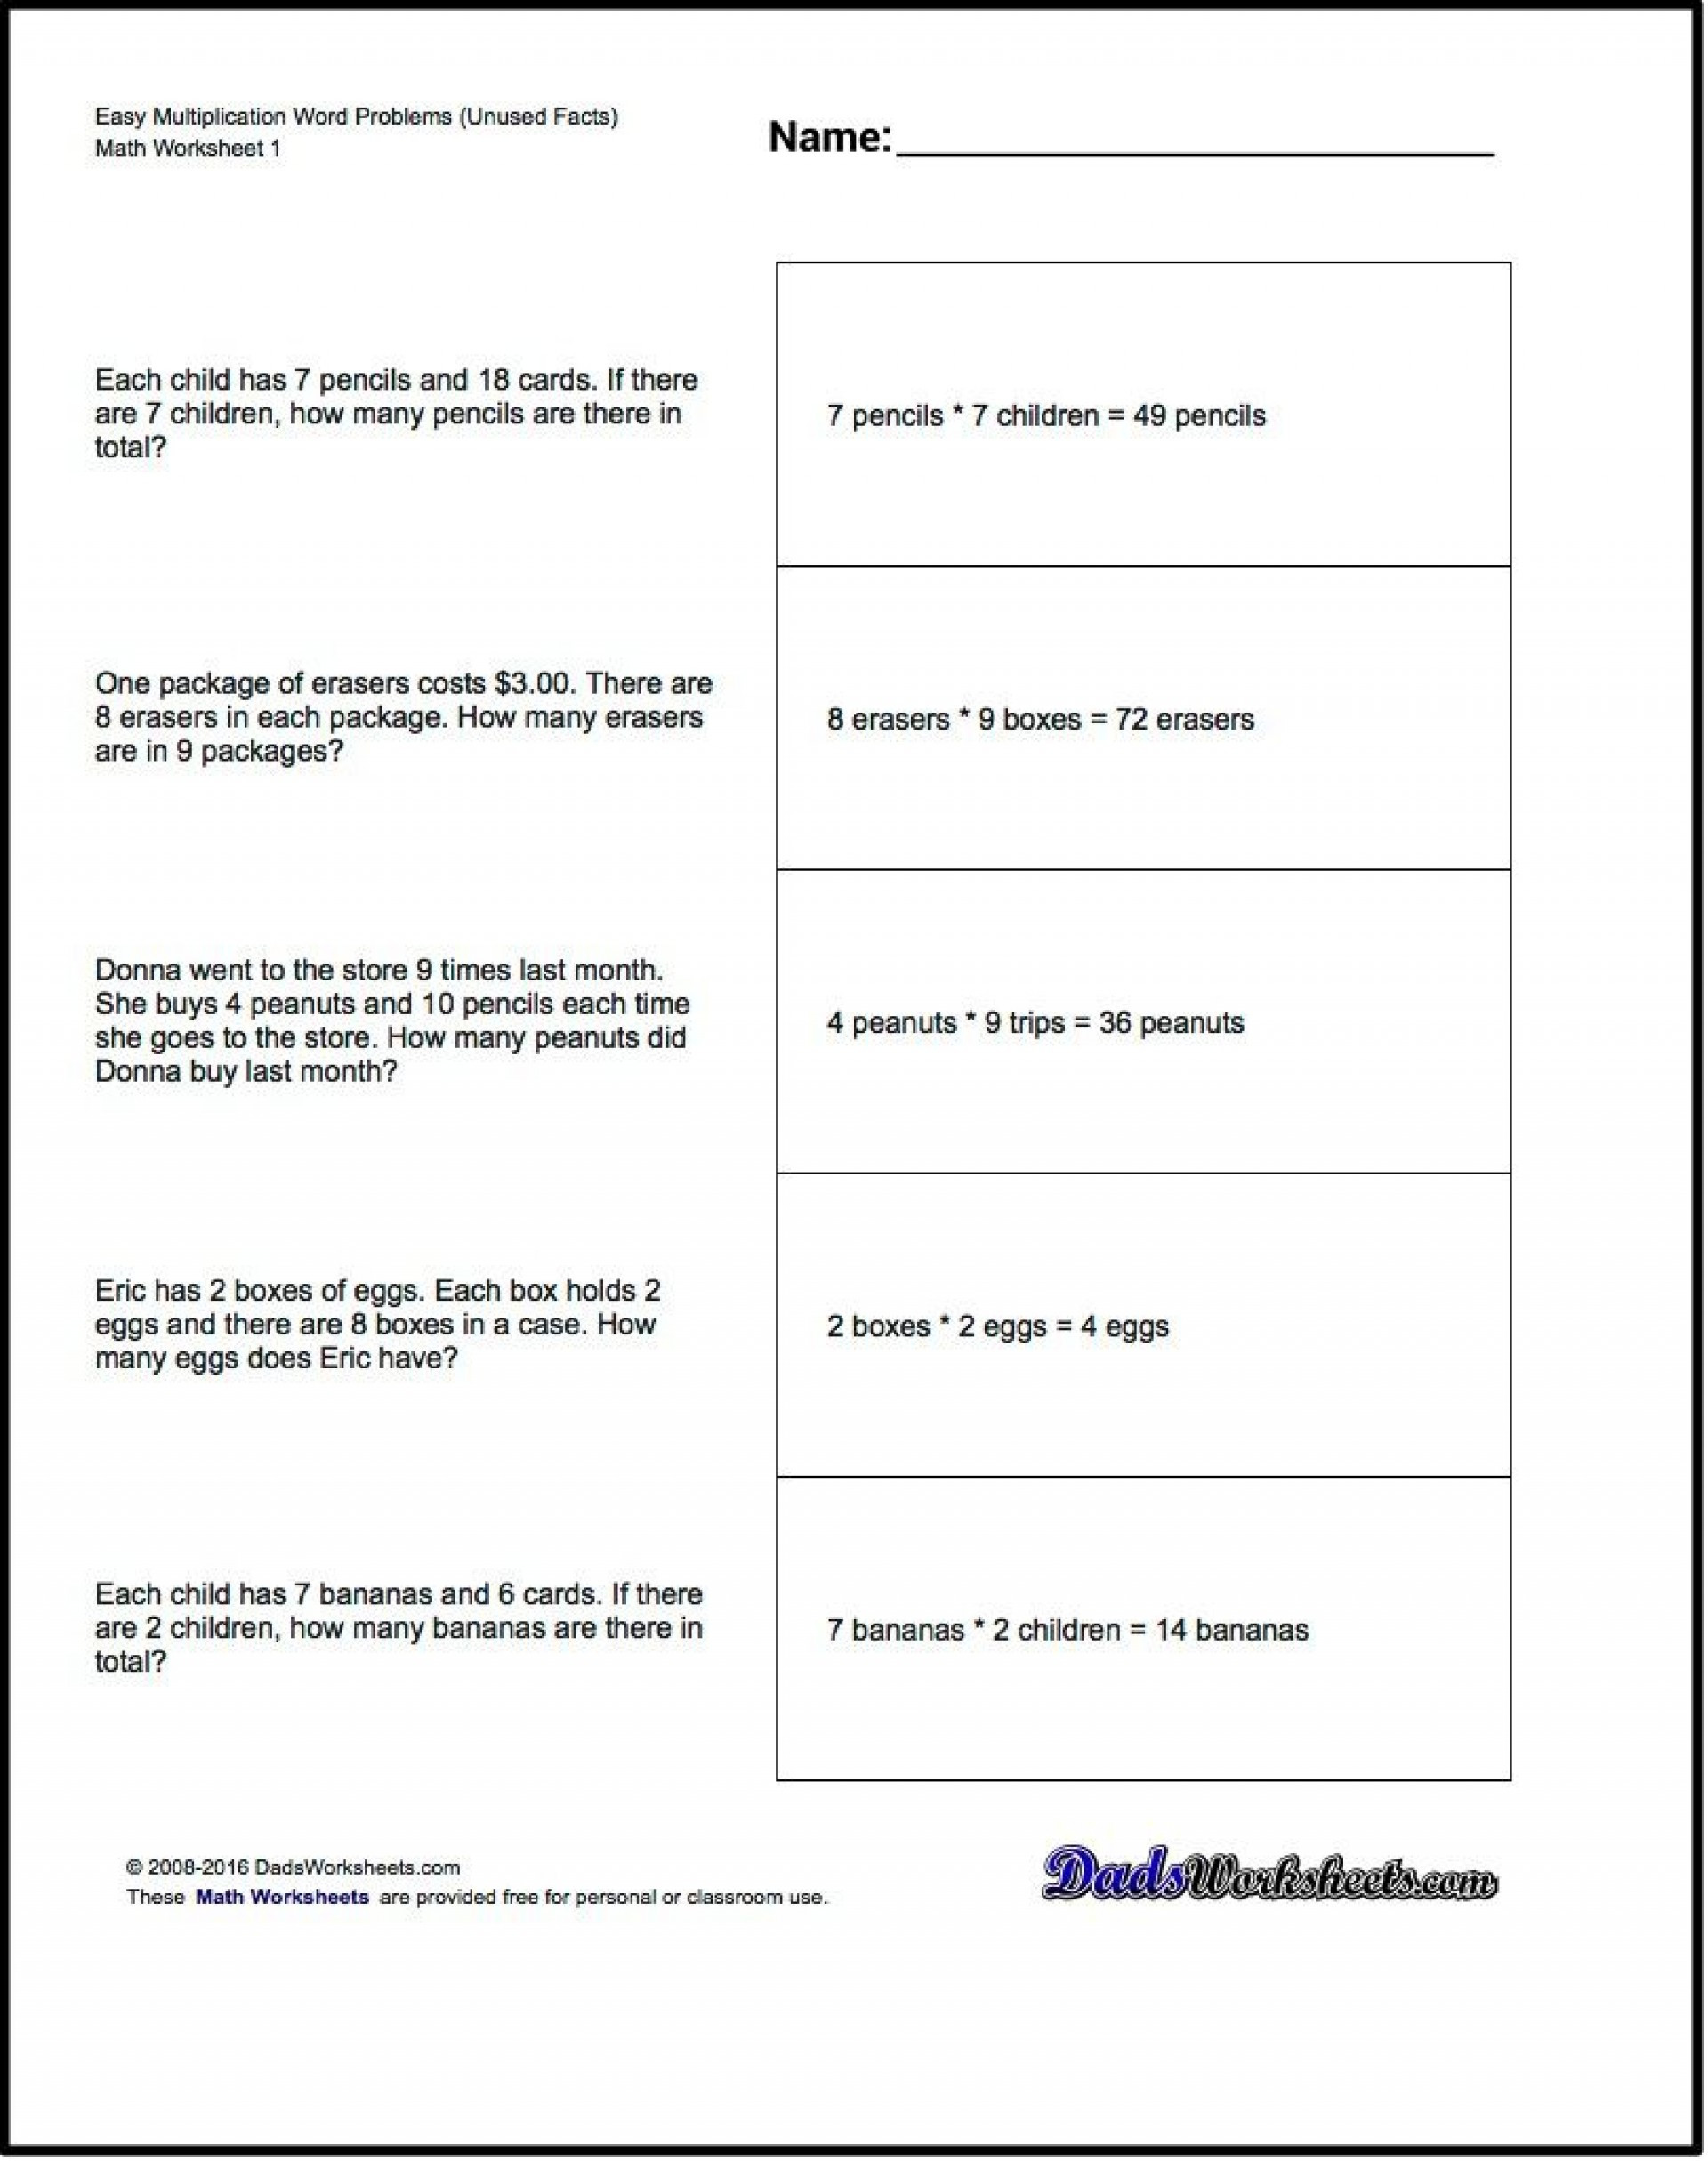 hight resolution of 5 Free Math Worksheets Second Grade 2 Subtraction Subtract whole Tens From  3 Digit Numbers - apocalomegaproductions.com